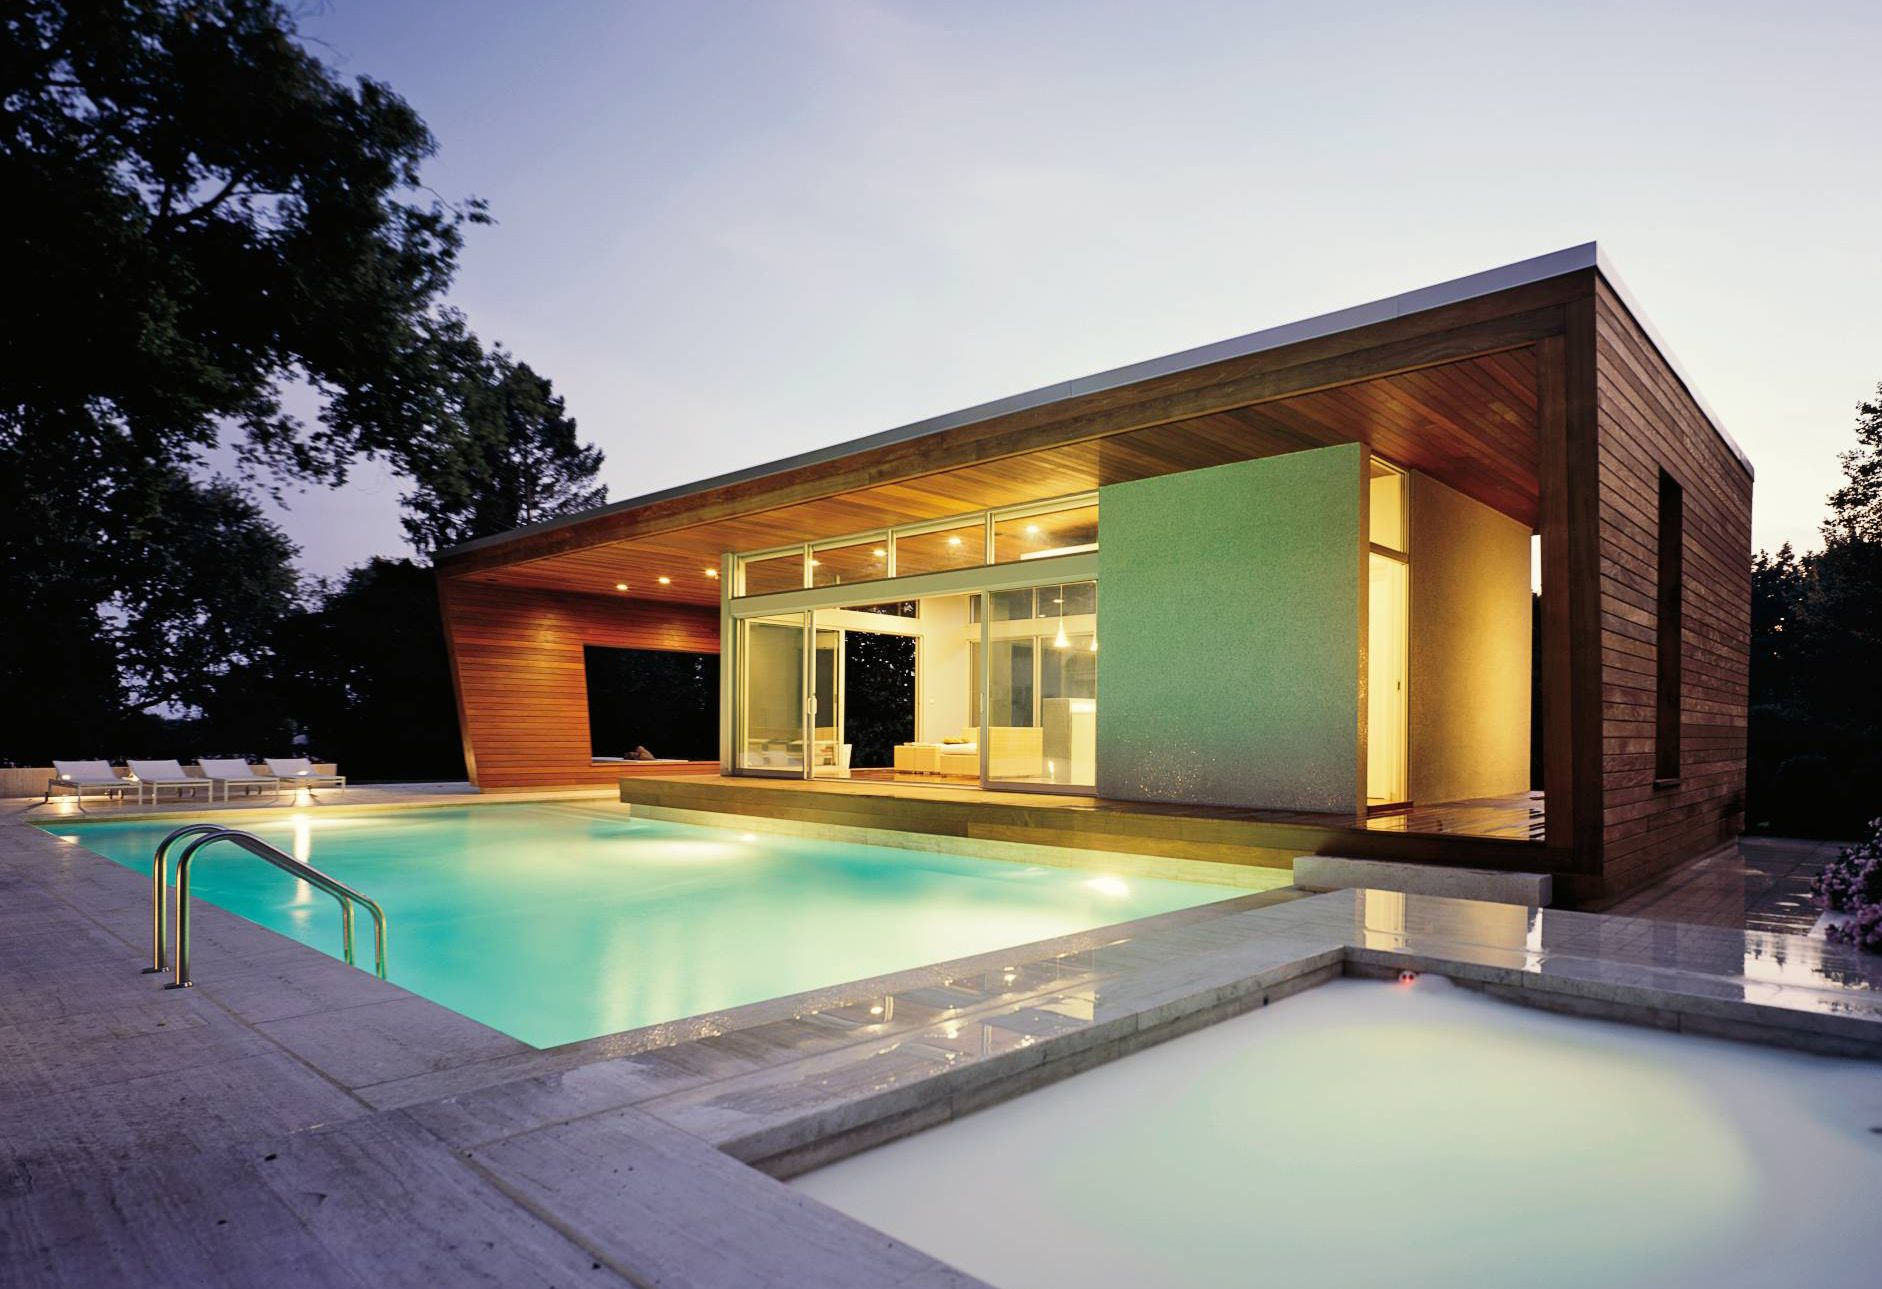 Swimming Pool Pool House Minimalist Design On Design Ideas Pool ...